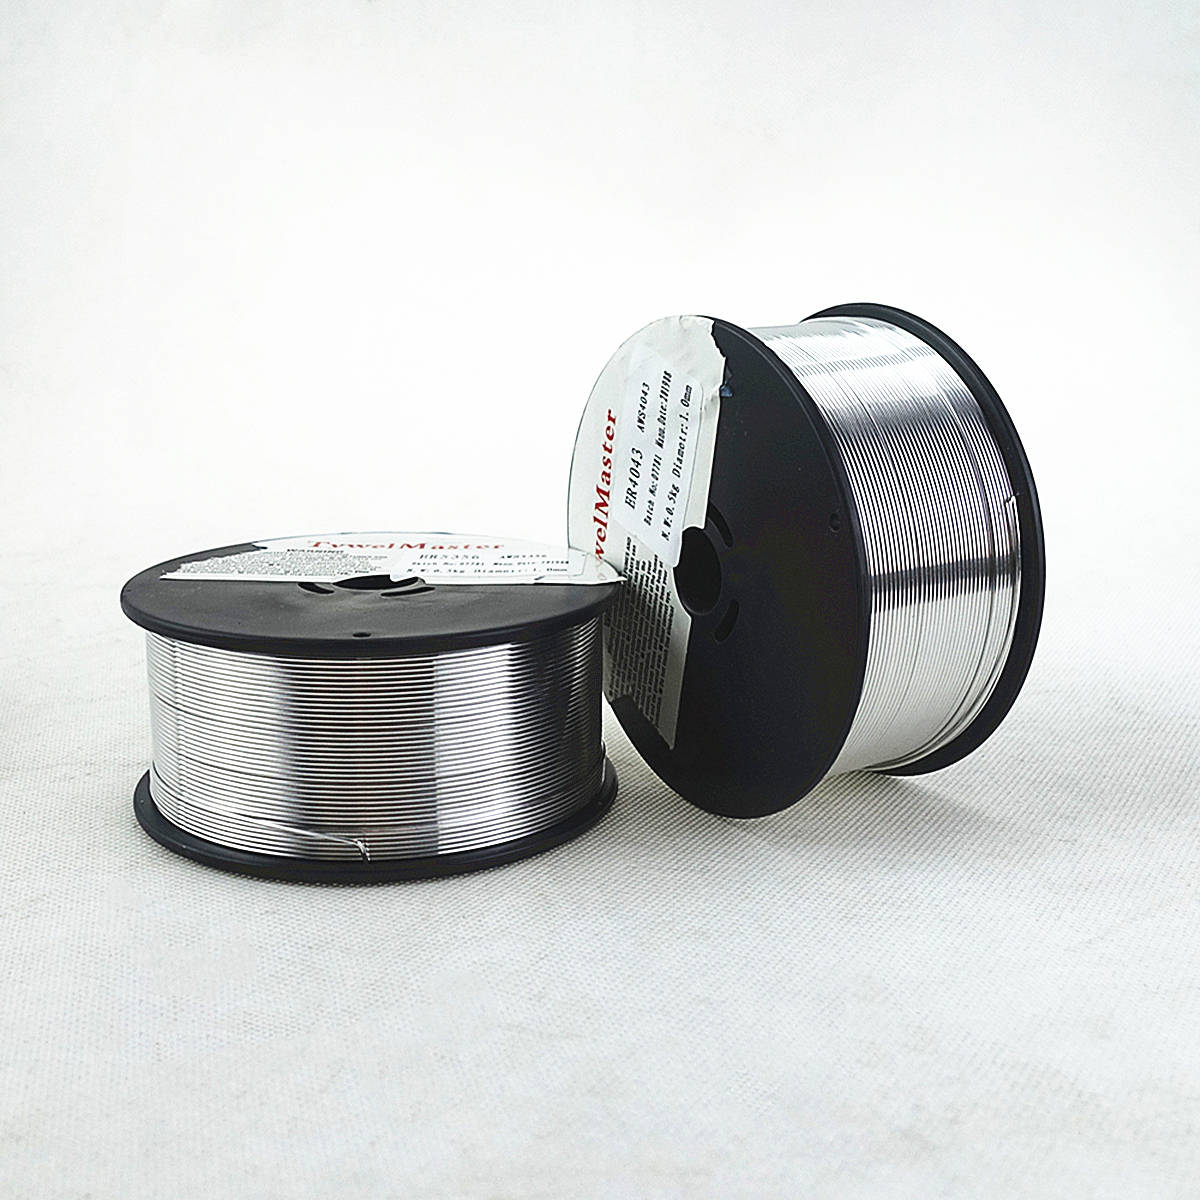 Aluminum Welding Wire ER4043 ER5356 0.5kg 0.8/1.0/1.2mm Mini Spool Gas Shield Aluminum Alloy Welding Material MIG Wire-in Welding Wires from Tools